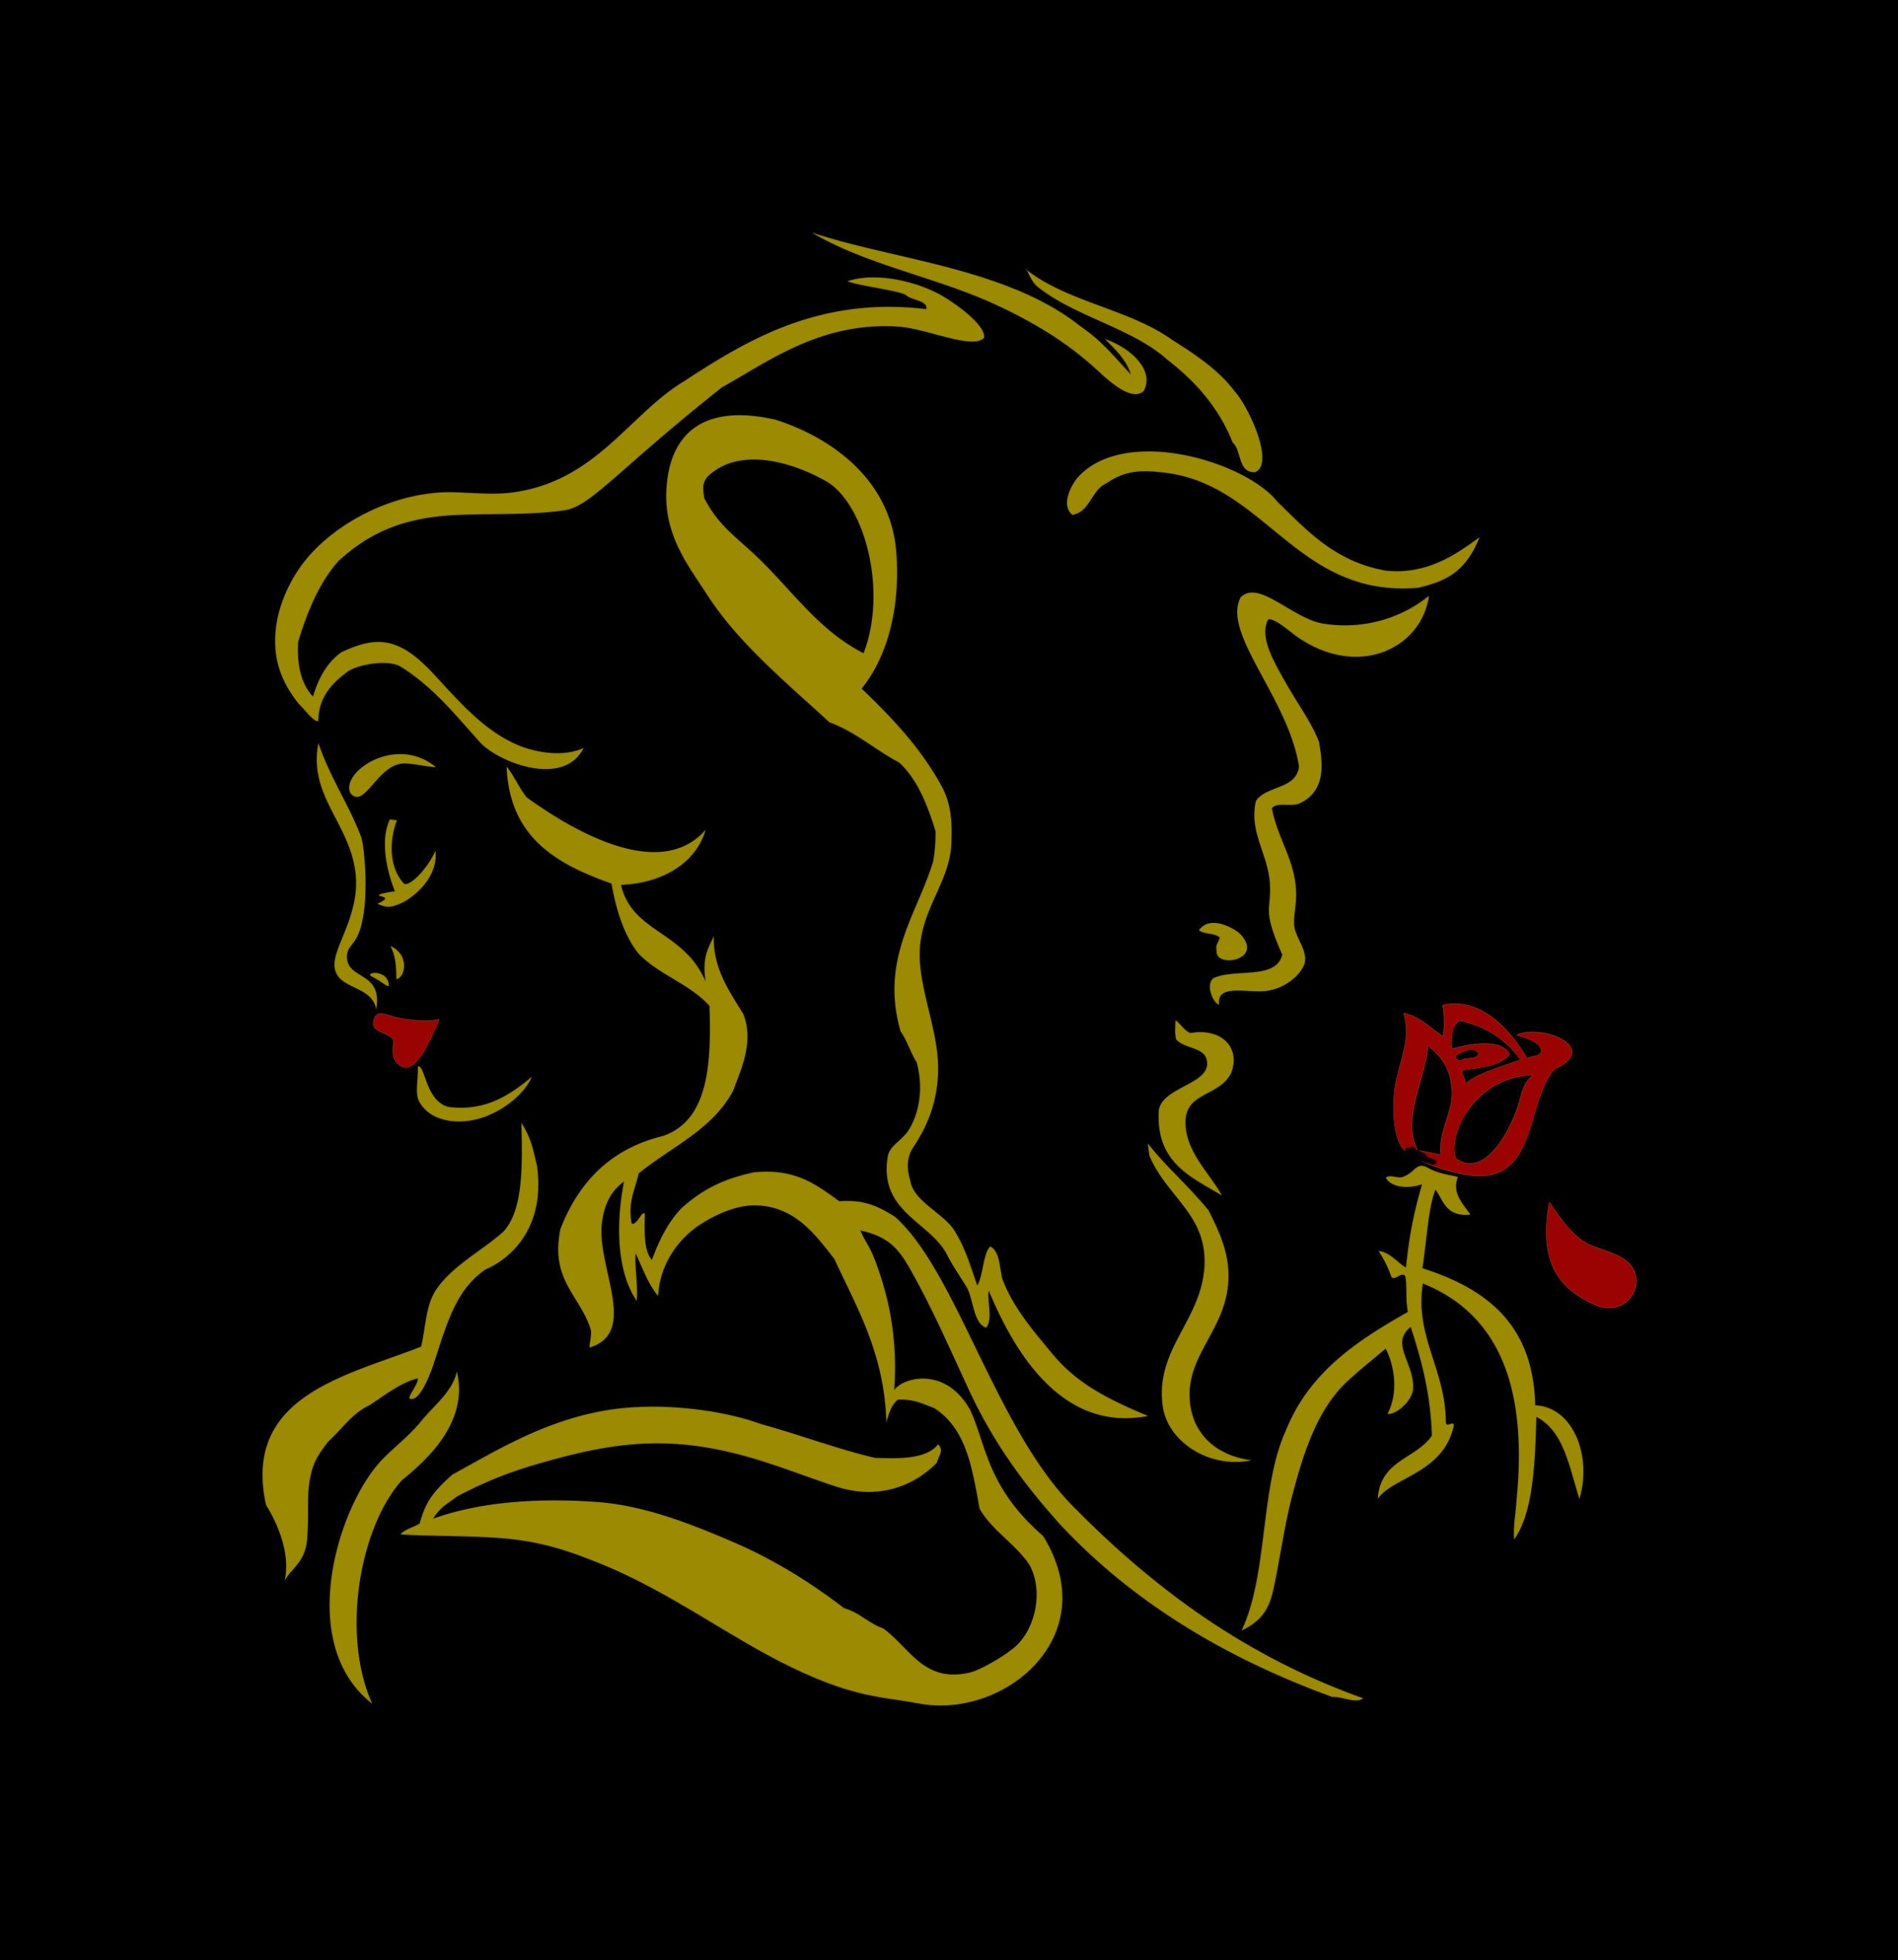 Beauty And The Beast Decal Sticker Fairy Tale Decal Love Etsy Beauty And The Beast Decals Stickers Fairy Tales [ 2646 x 2562 Pixel ]